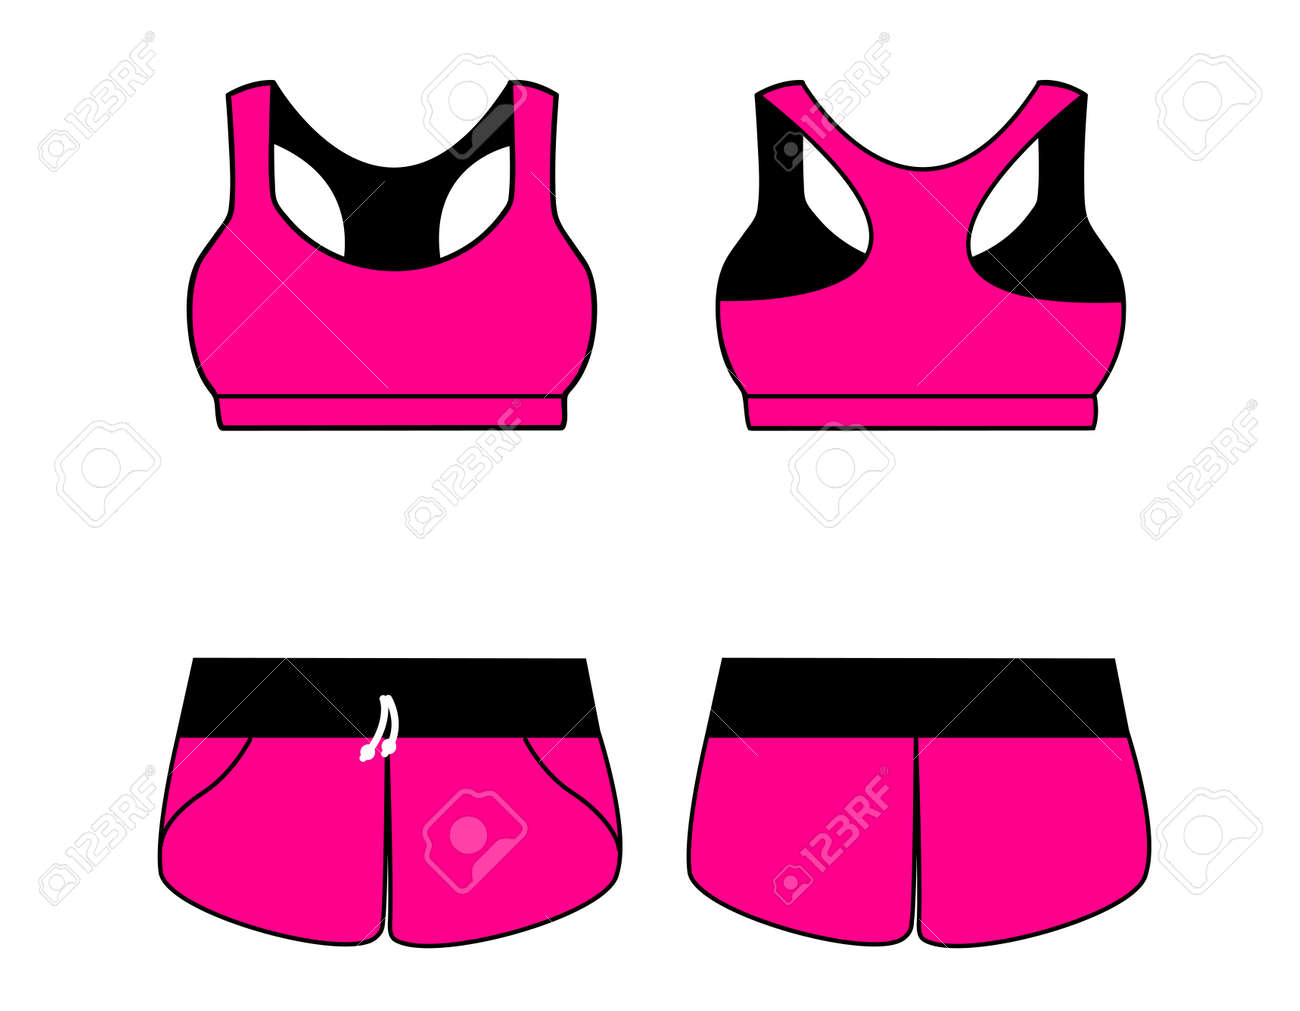 8b4632c3a06cf Vector - Vector illustration of women s sport underwear. Bra and shorts.  Front and back views